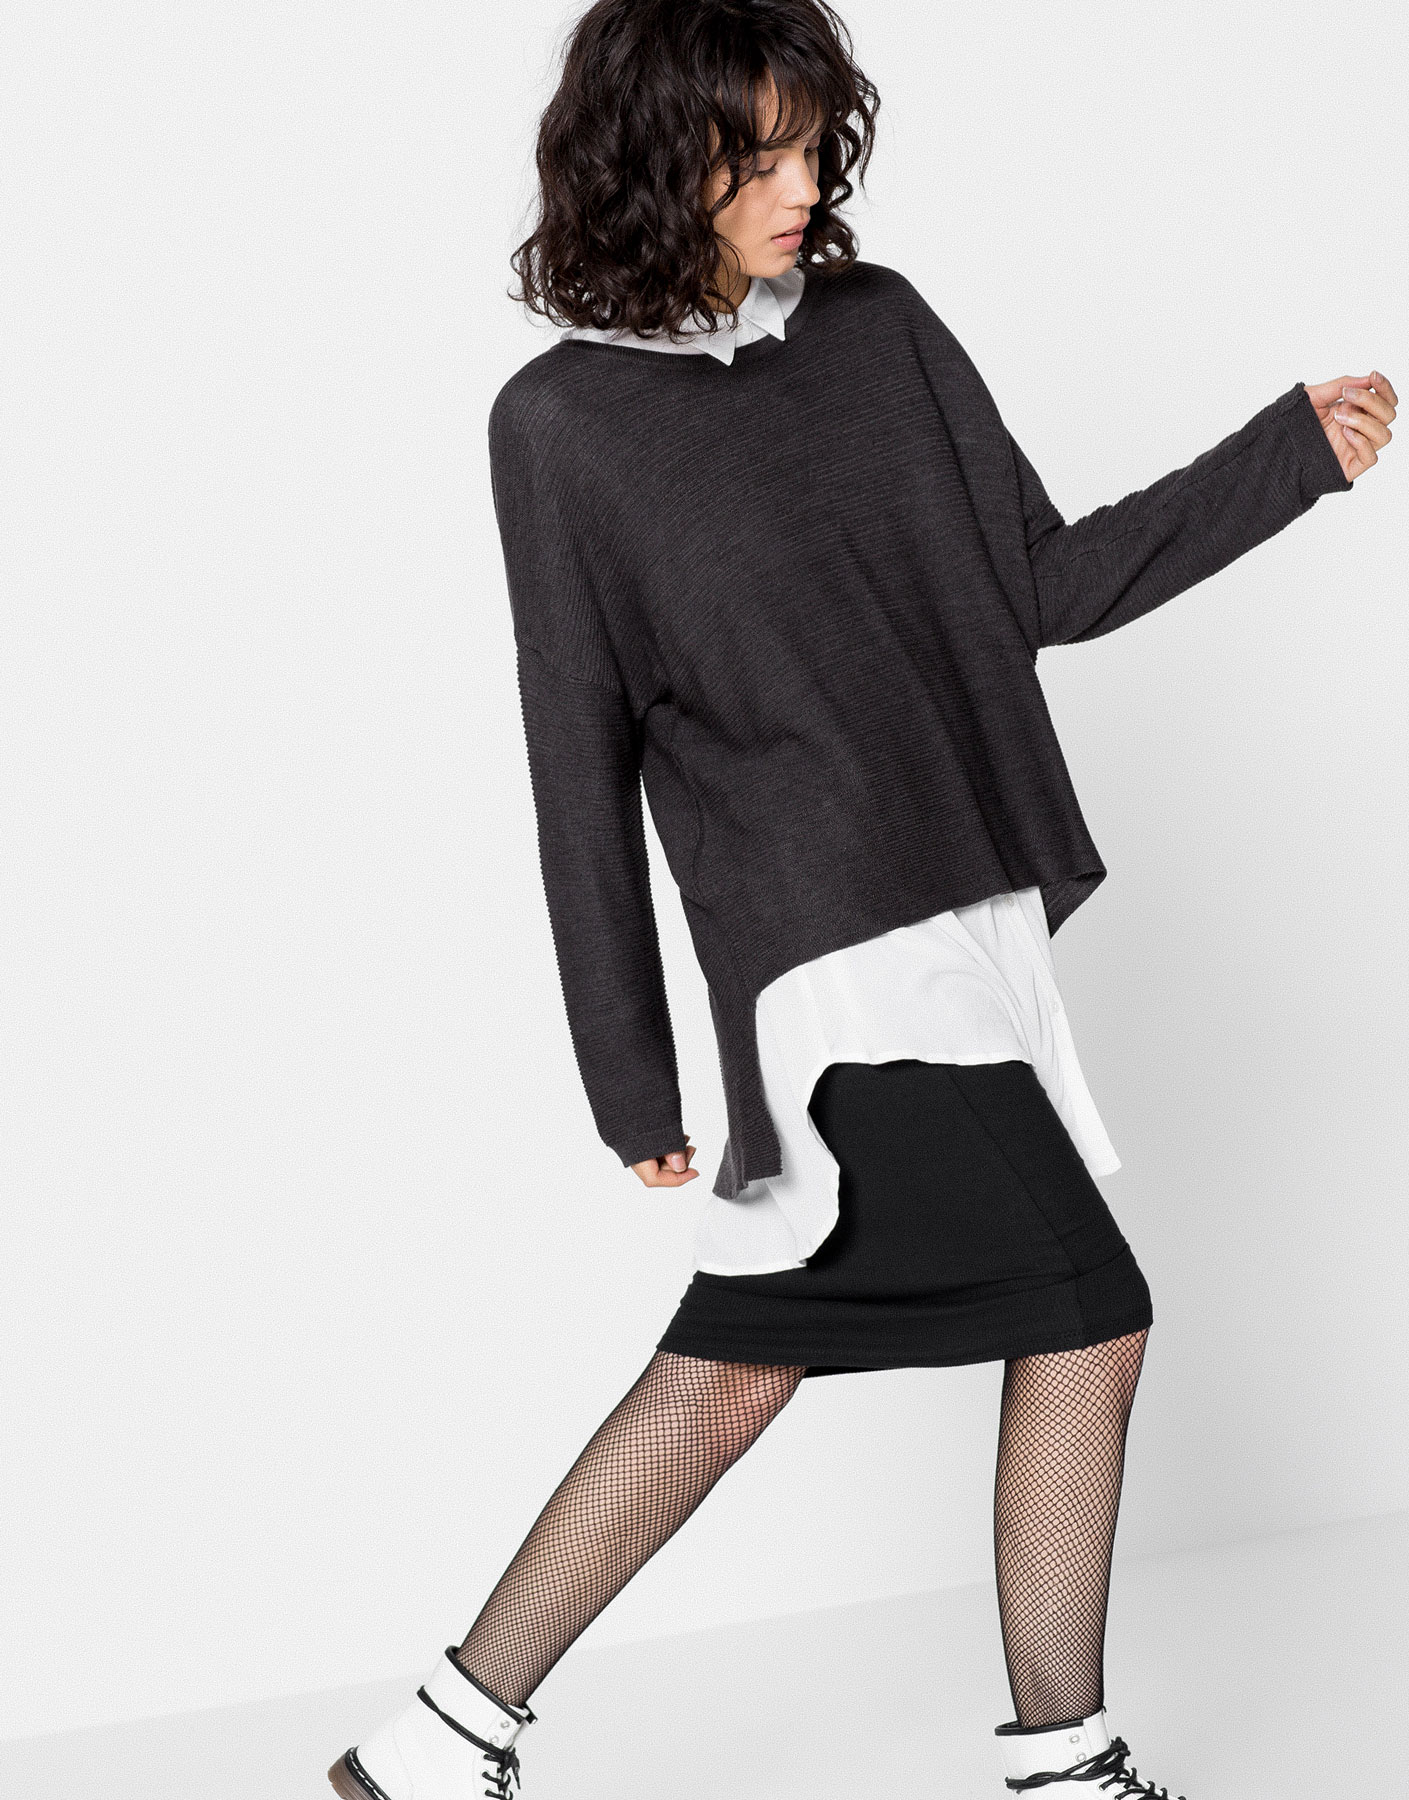 Fine sweater with asymmetric length